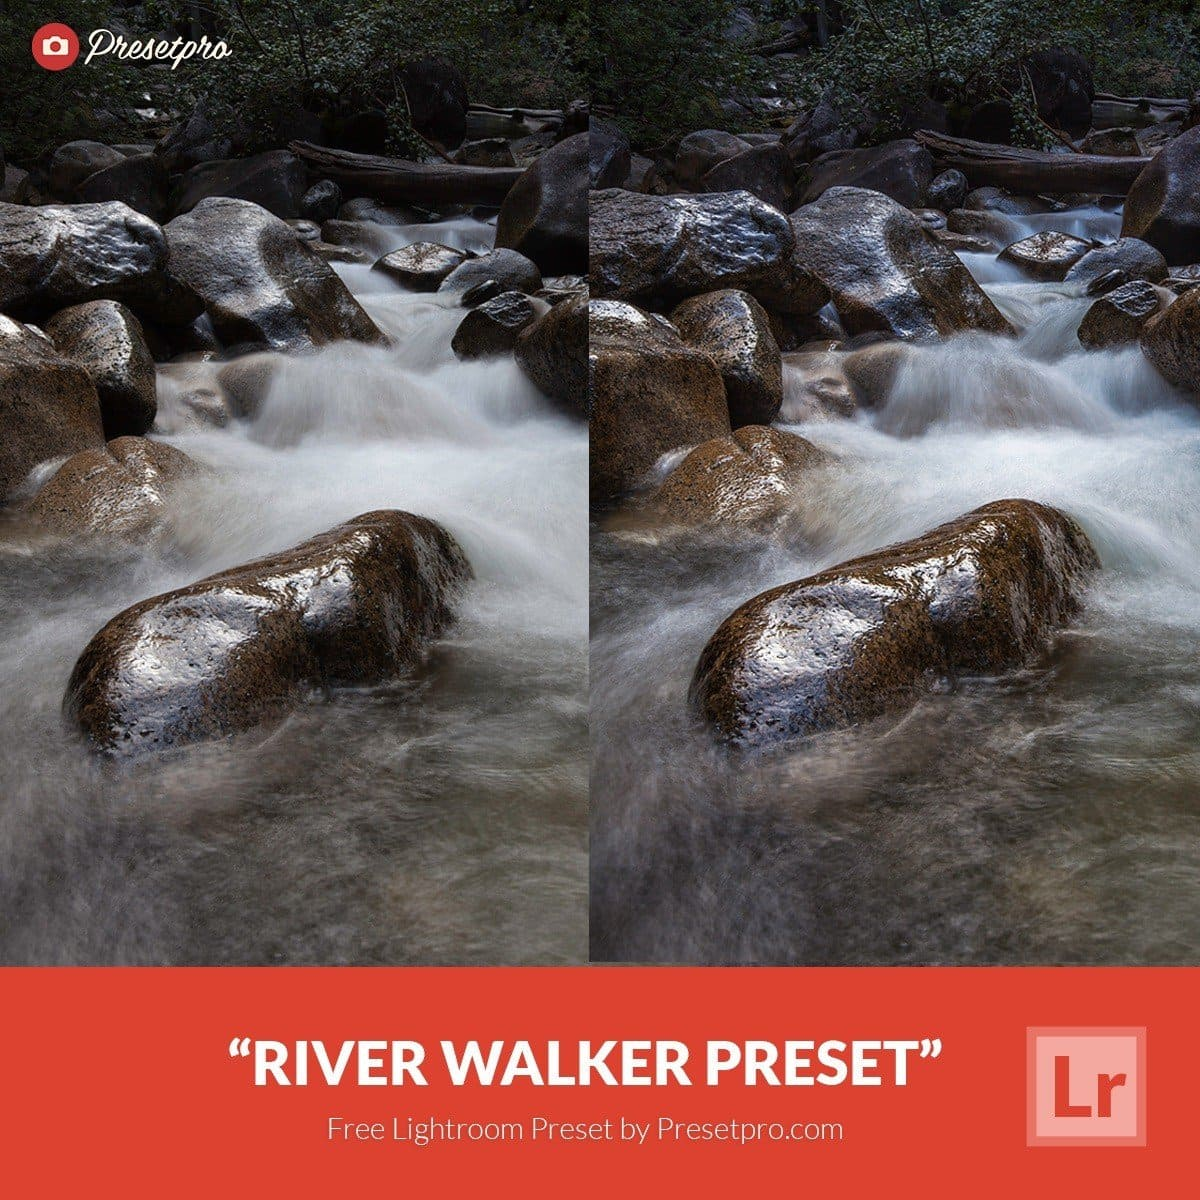 Free-Lightroom-Preset-River-Walker